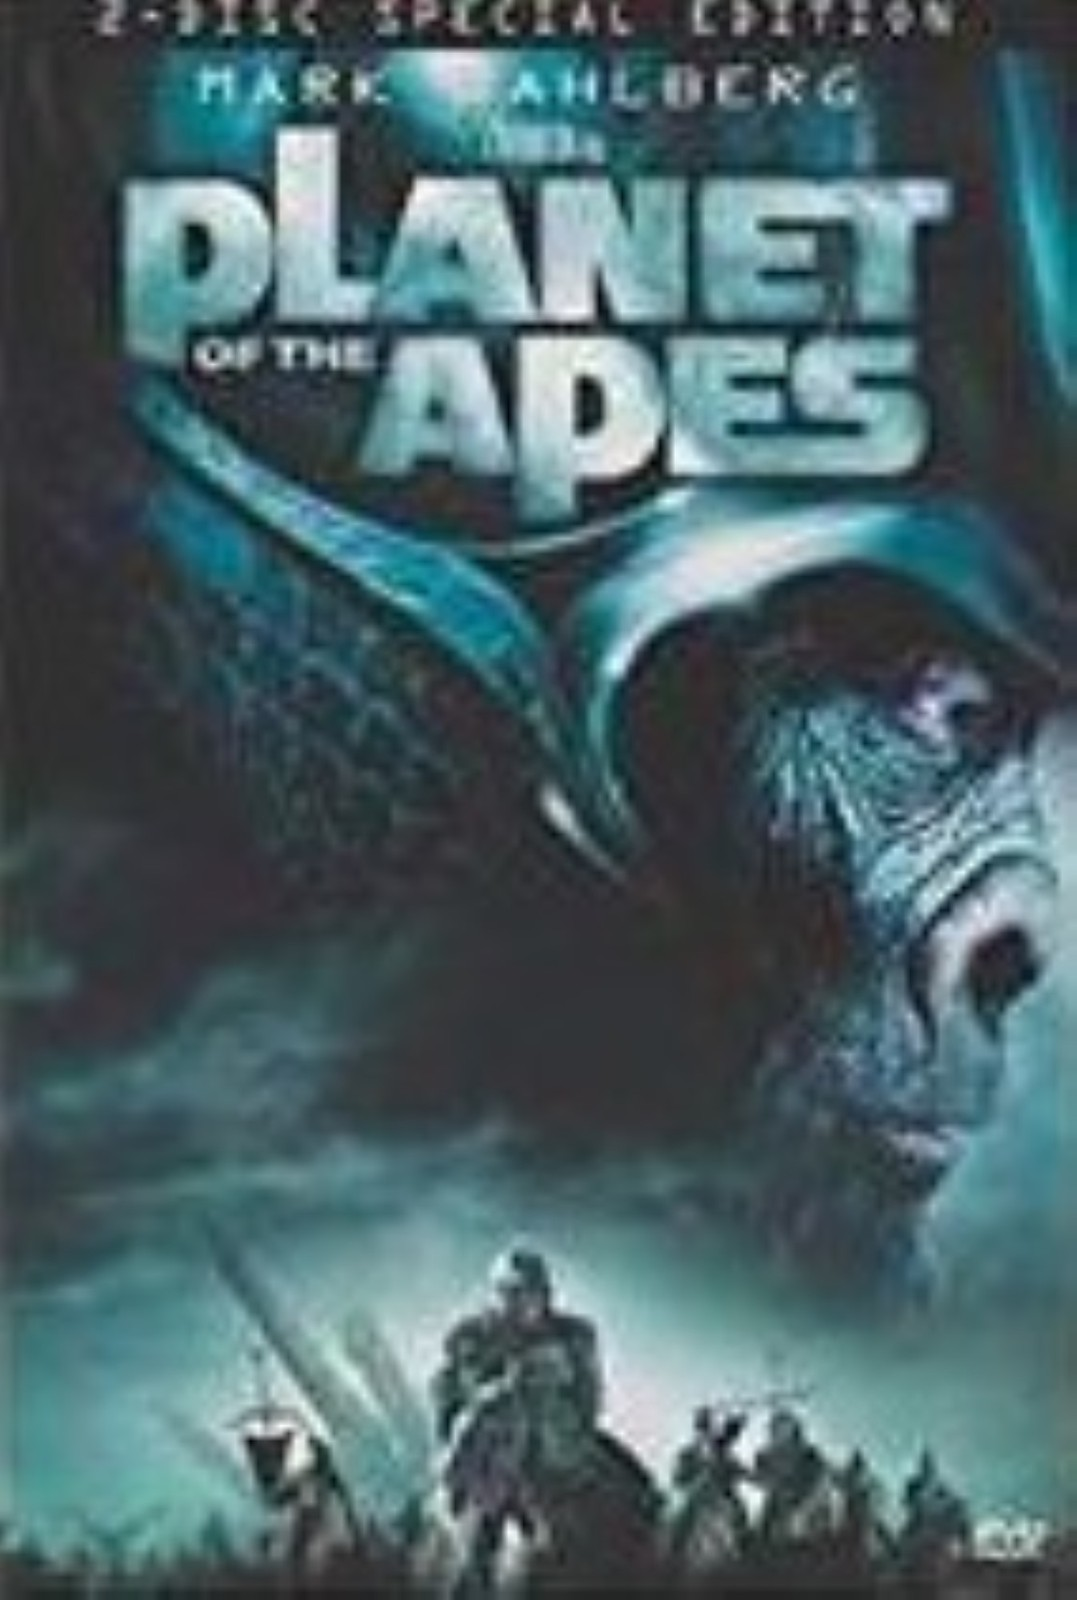 Planet of the Apes Dvd 2 Disc Special Edition Dvd